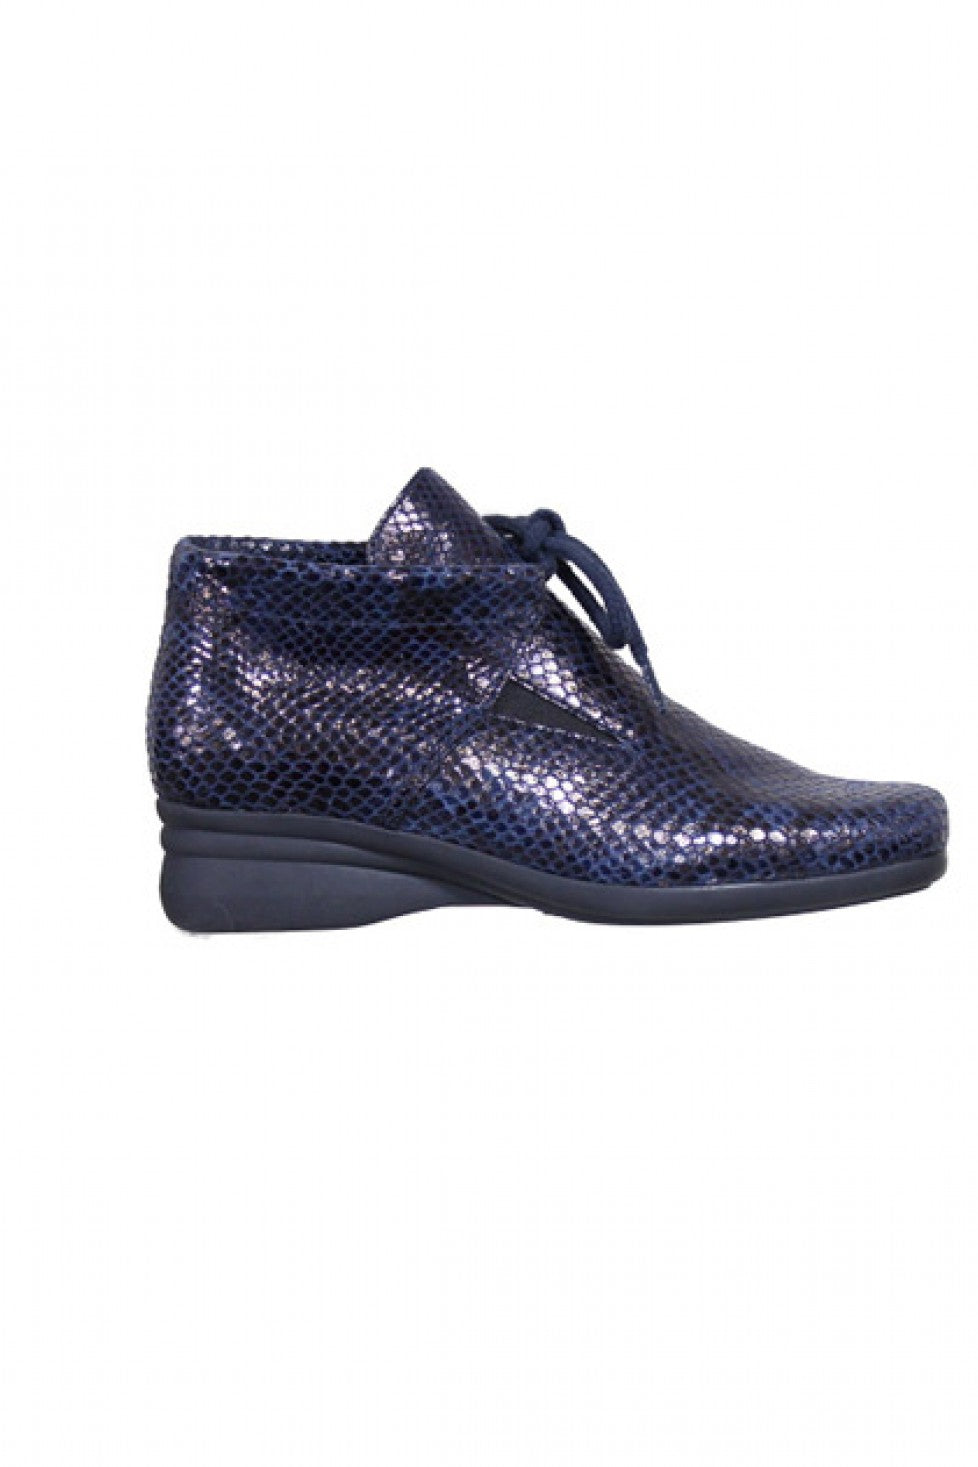 The Hirica Genna Boot Marine Python Style and Grace